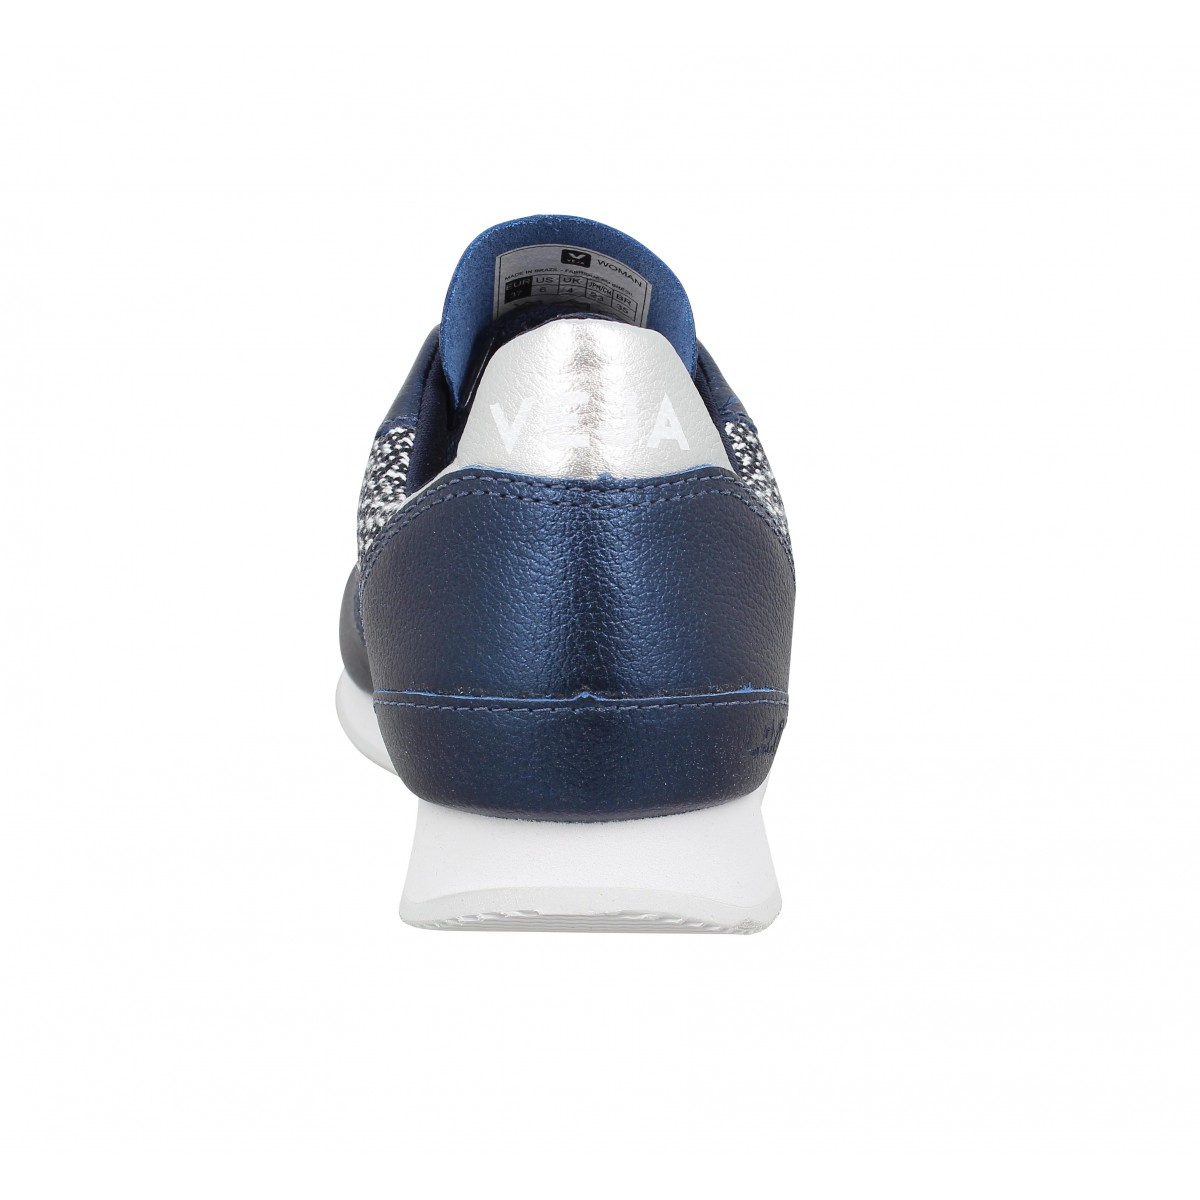 Chaussures Veja holiday cuir textile femme petrole femme